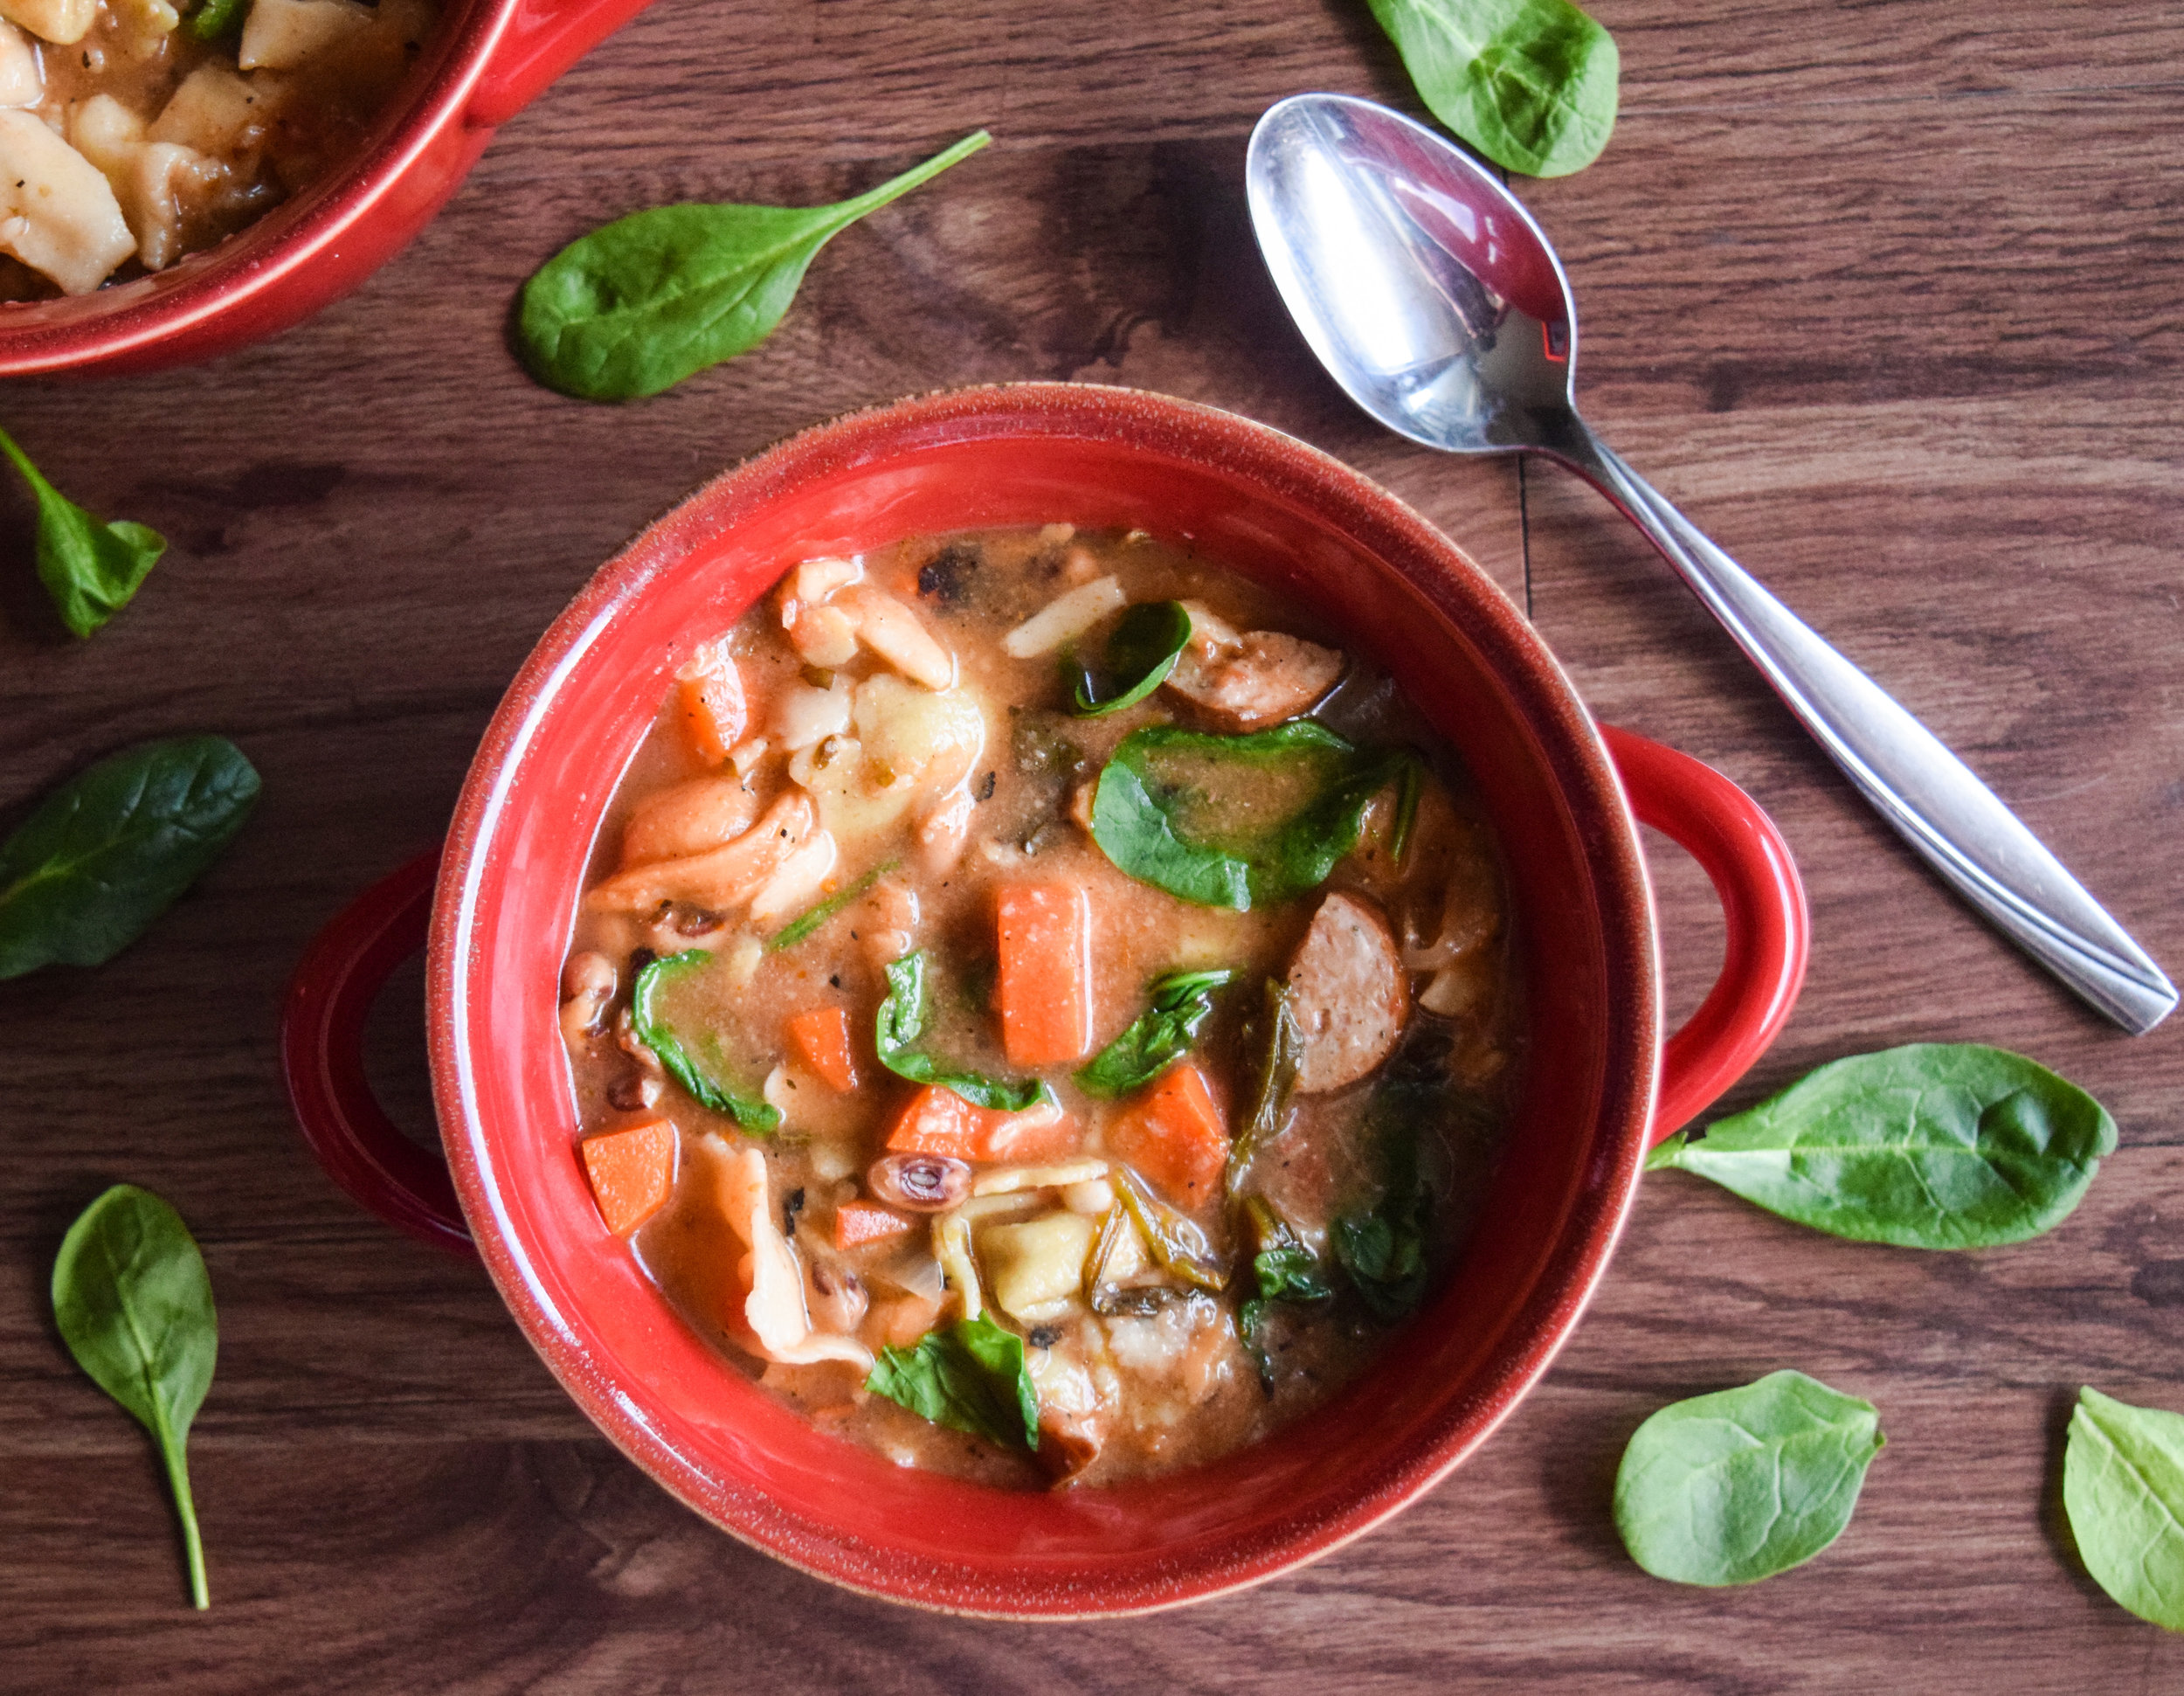 Tortellini Soup with Chicken Sausage + Veggies